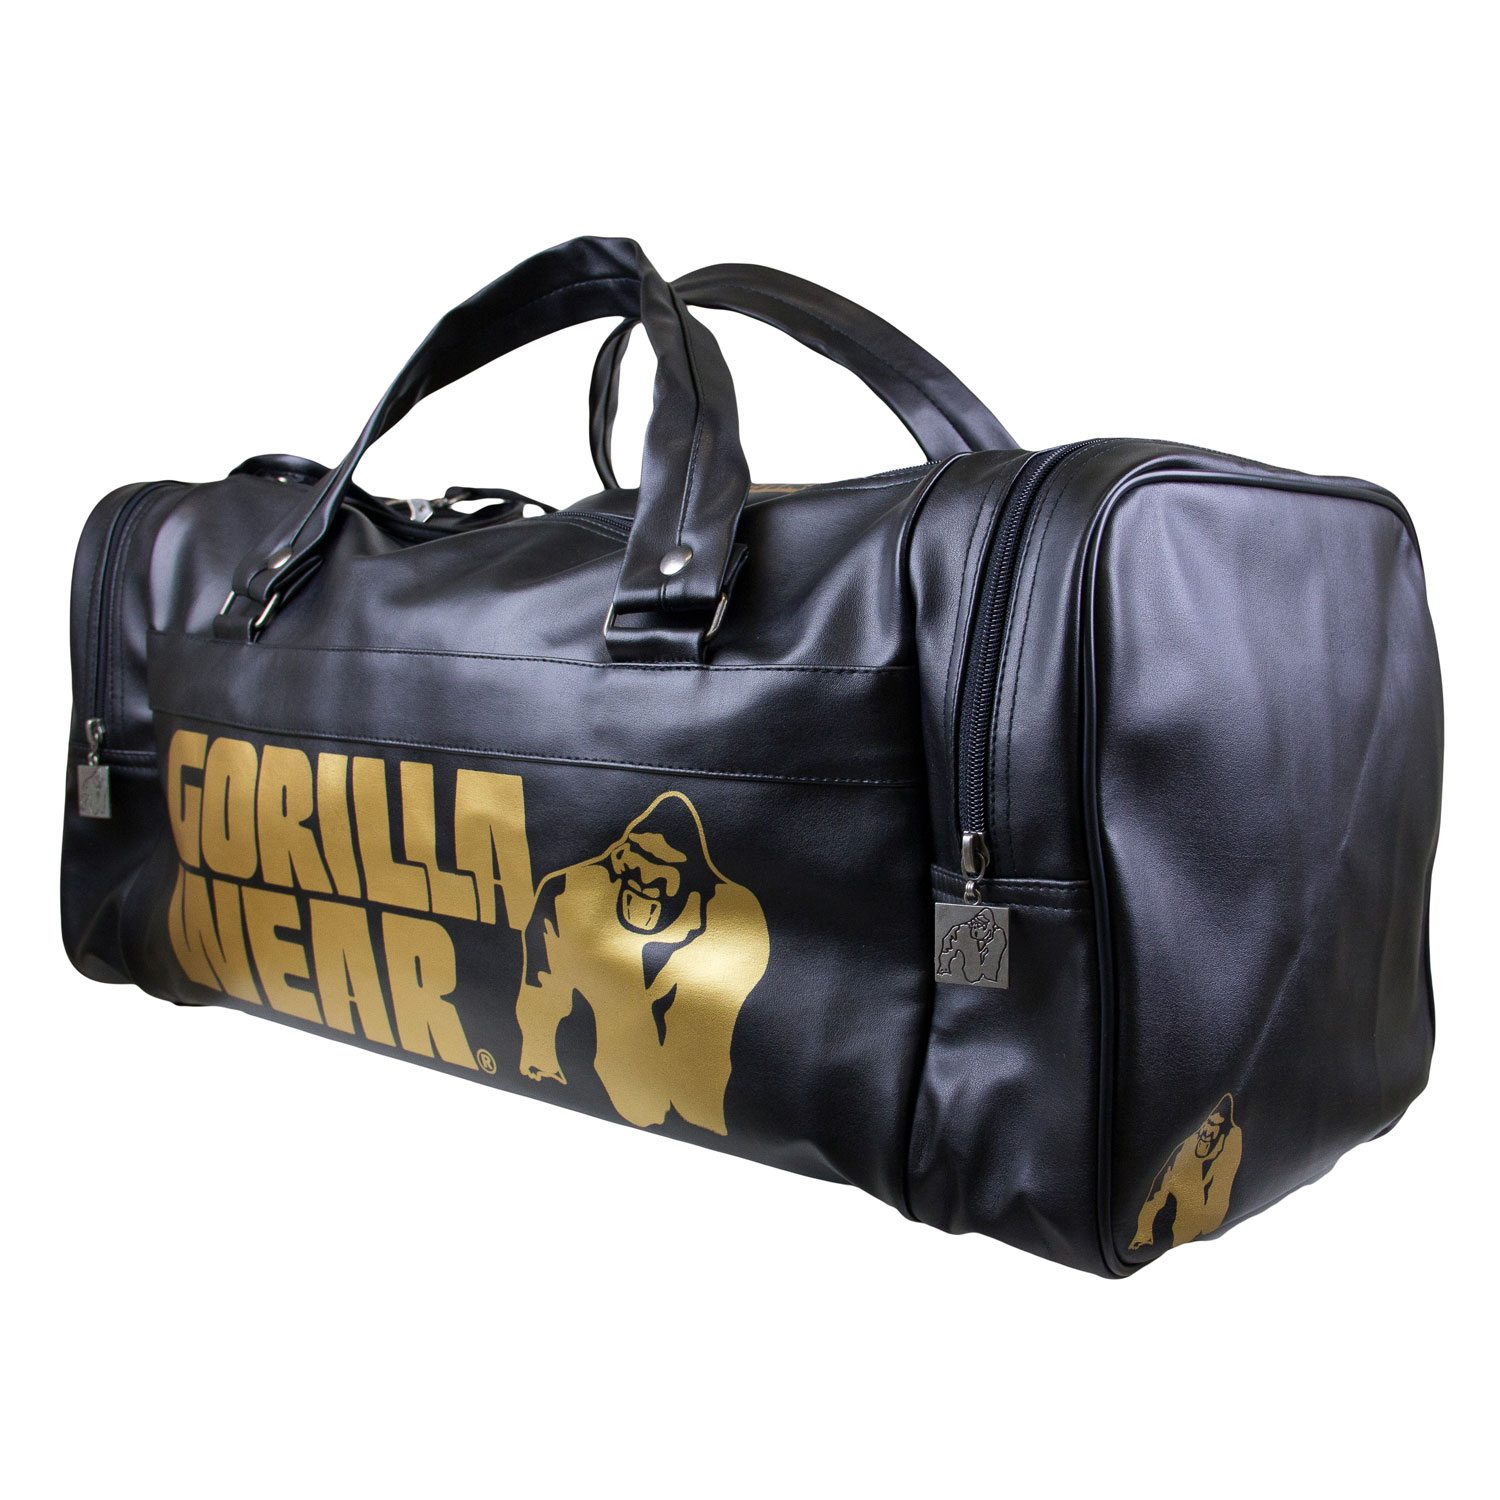 Gym Bag Gorilla Wear: Bodybuilding Tas Zwart Goud